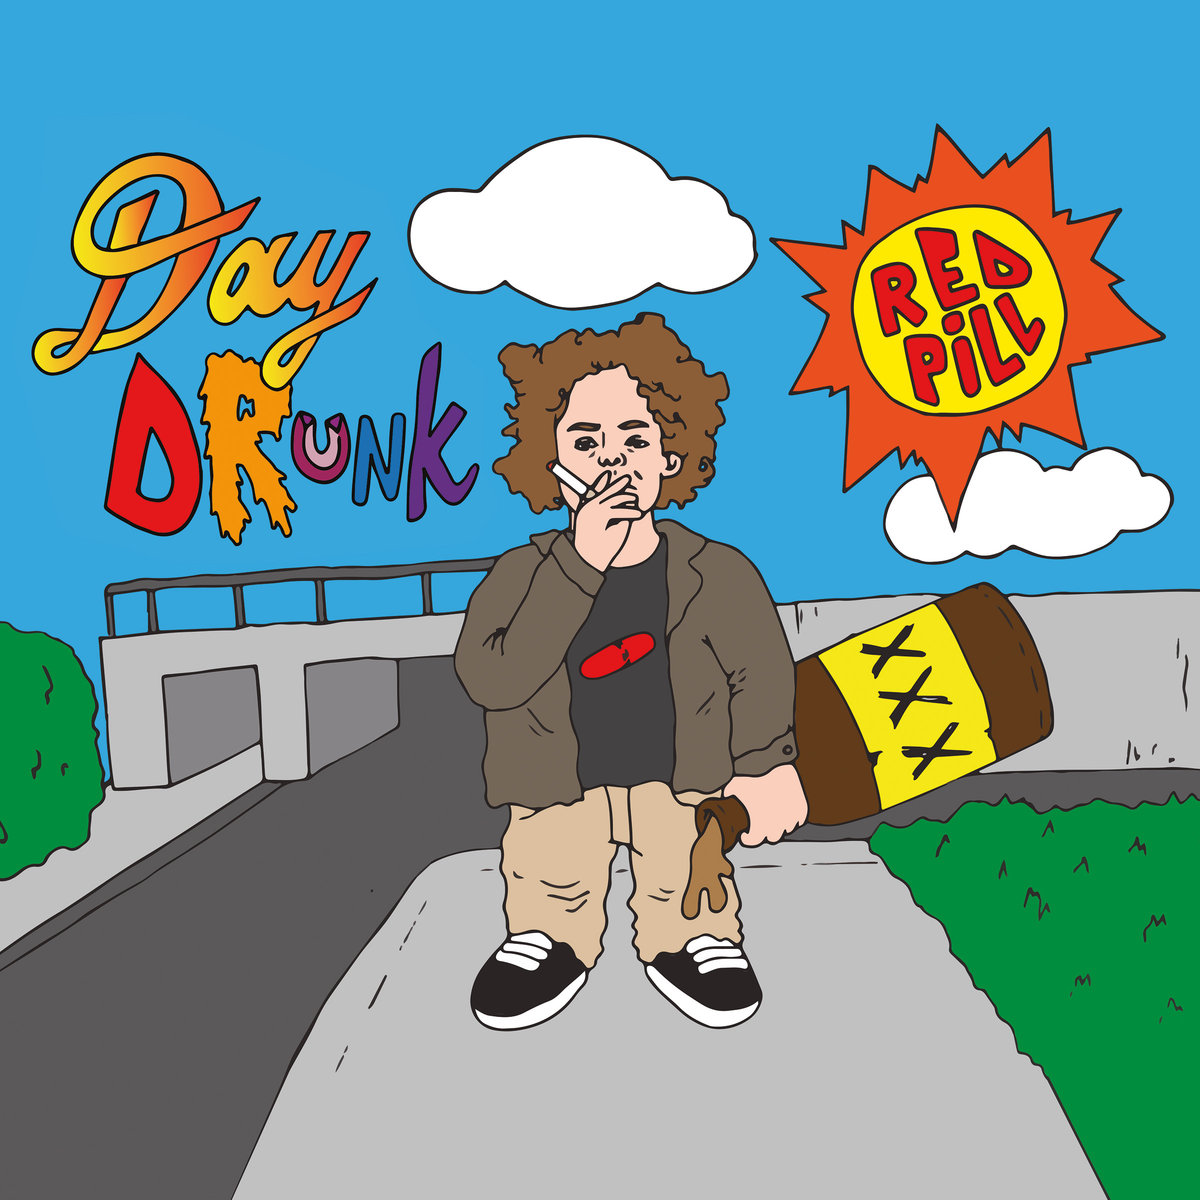 Day_drunk_ep